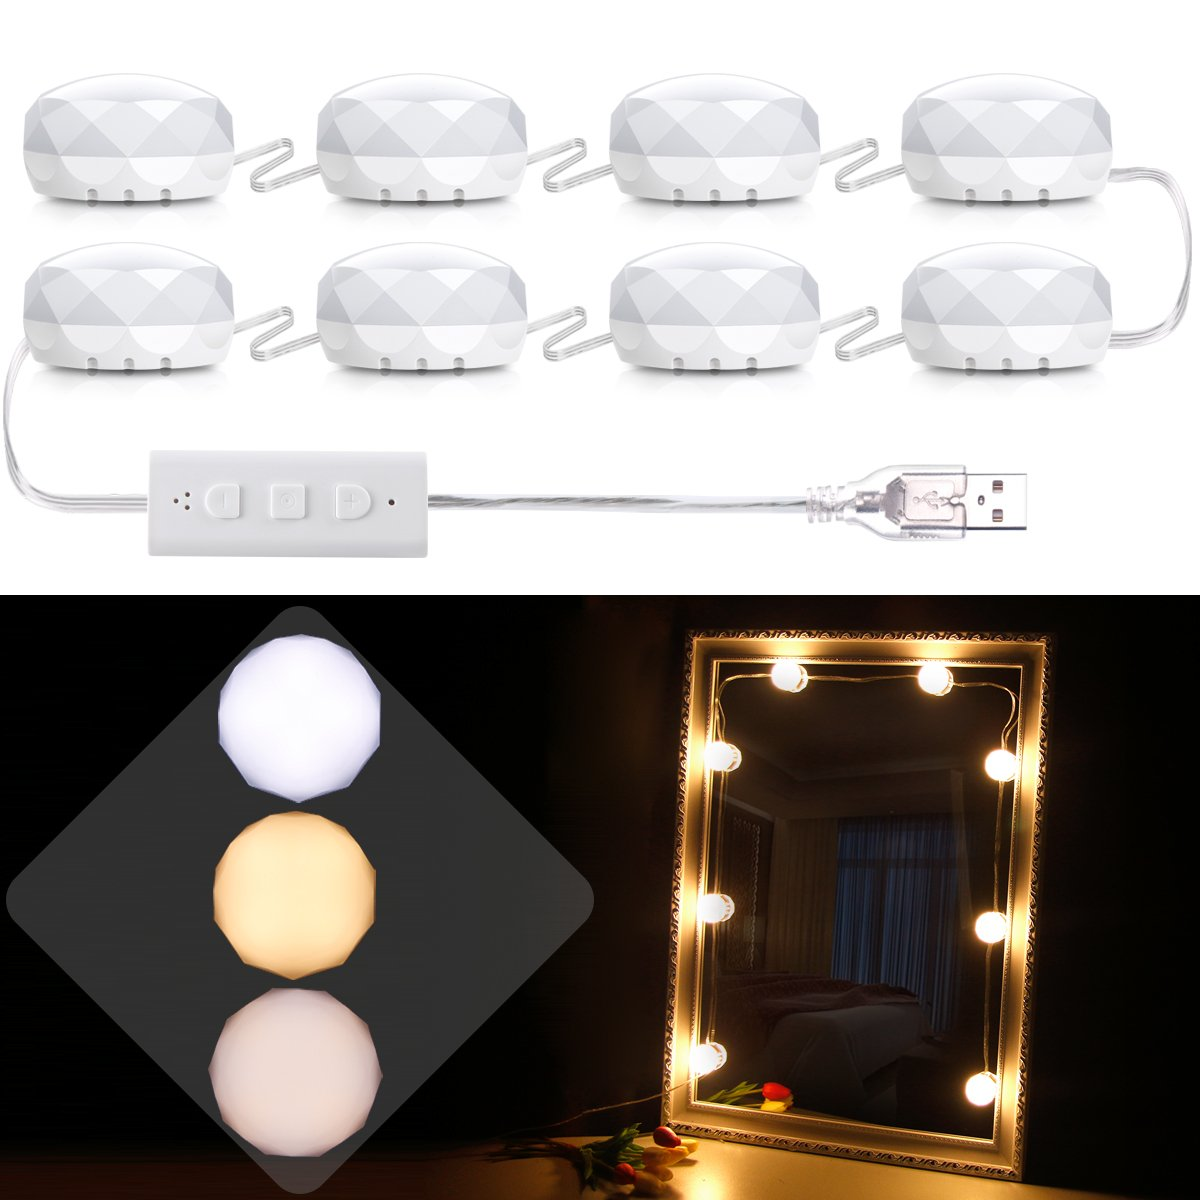 B-Land Hollywood Style LED Vanity Mirror Lights Kit with Dimmable White, Warm White & Warm Yellow Colors, Lighting Fixture Strip for Makeup Vanity Table Set, LED String Light for Party Decoration